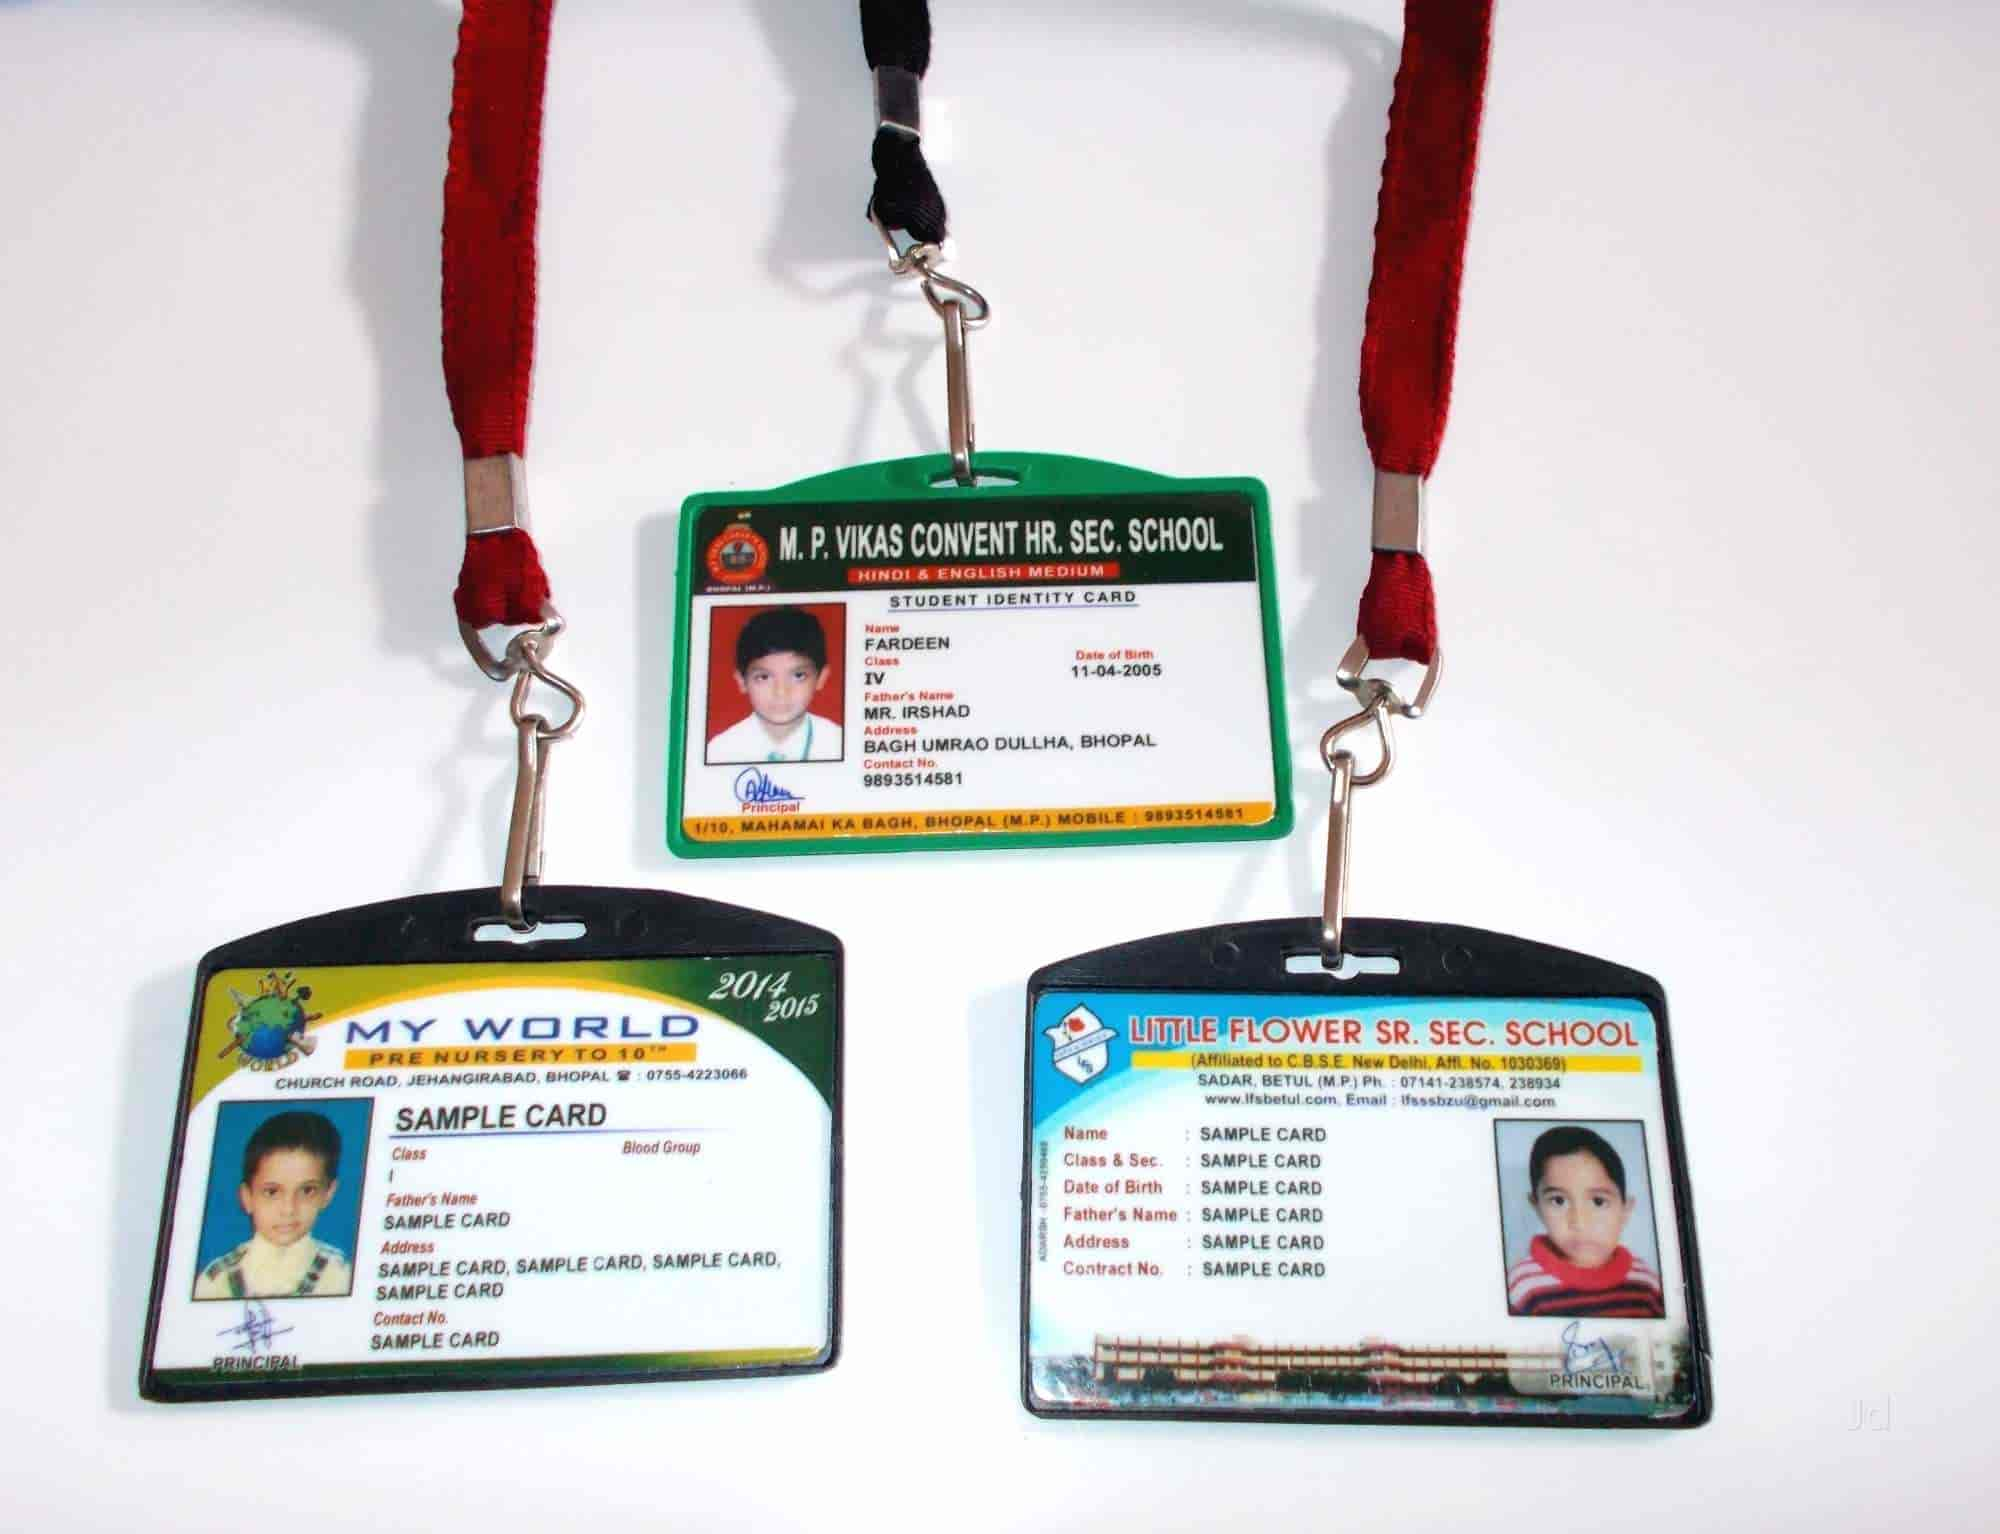 Adarsh Id Cards Photos, M P Nagar, Bhopal- Pictures & Images Gallery